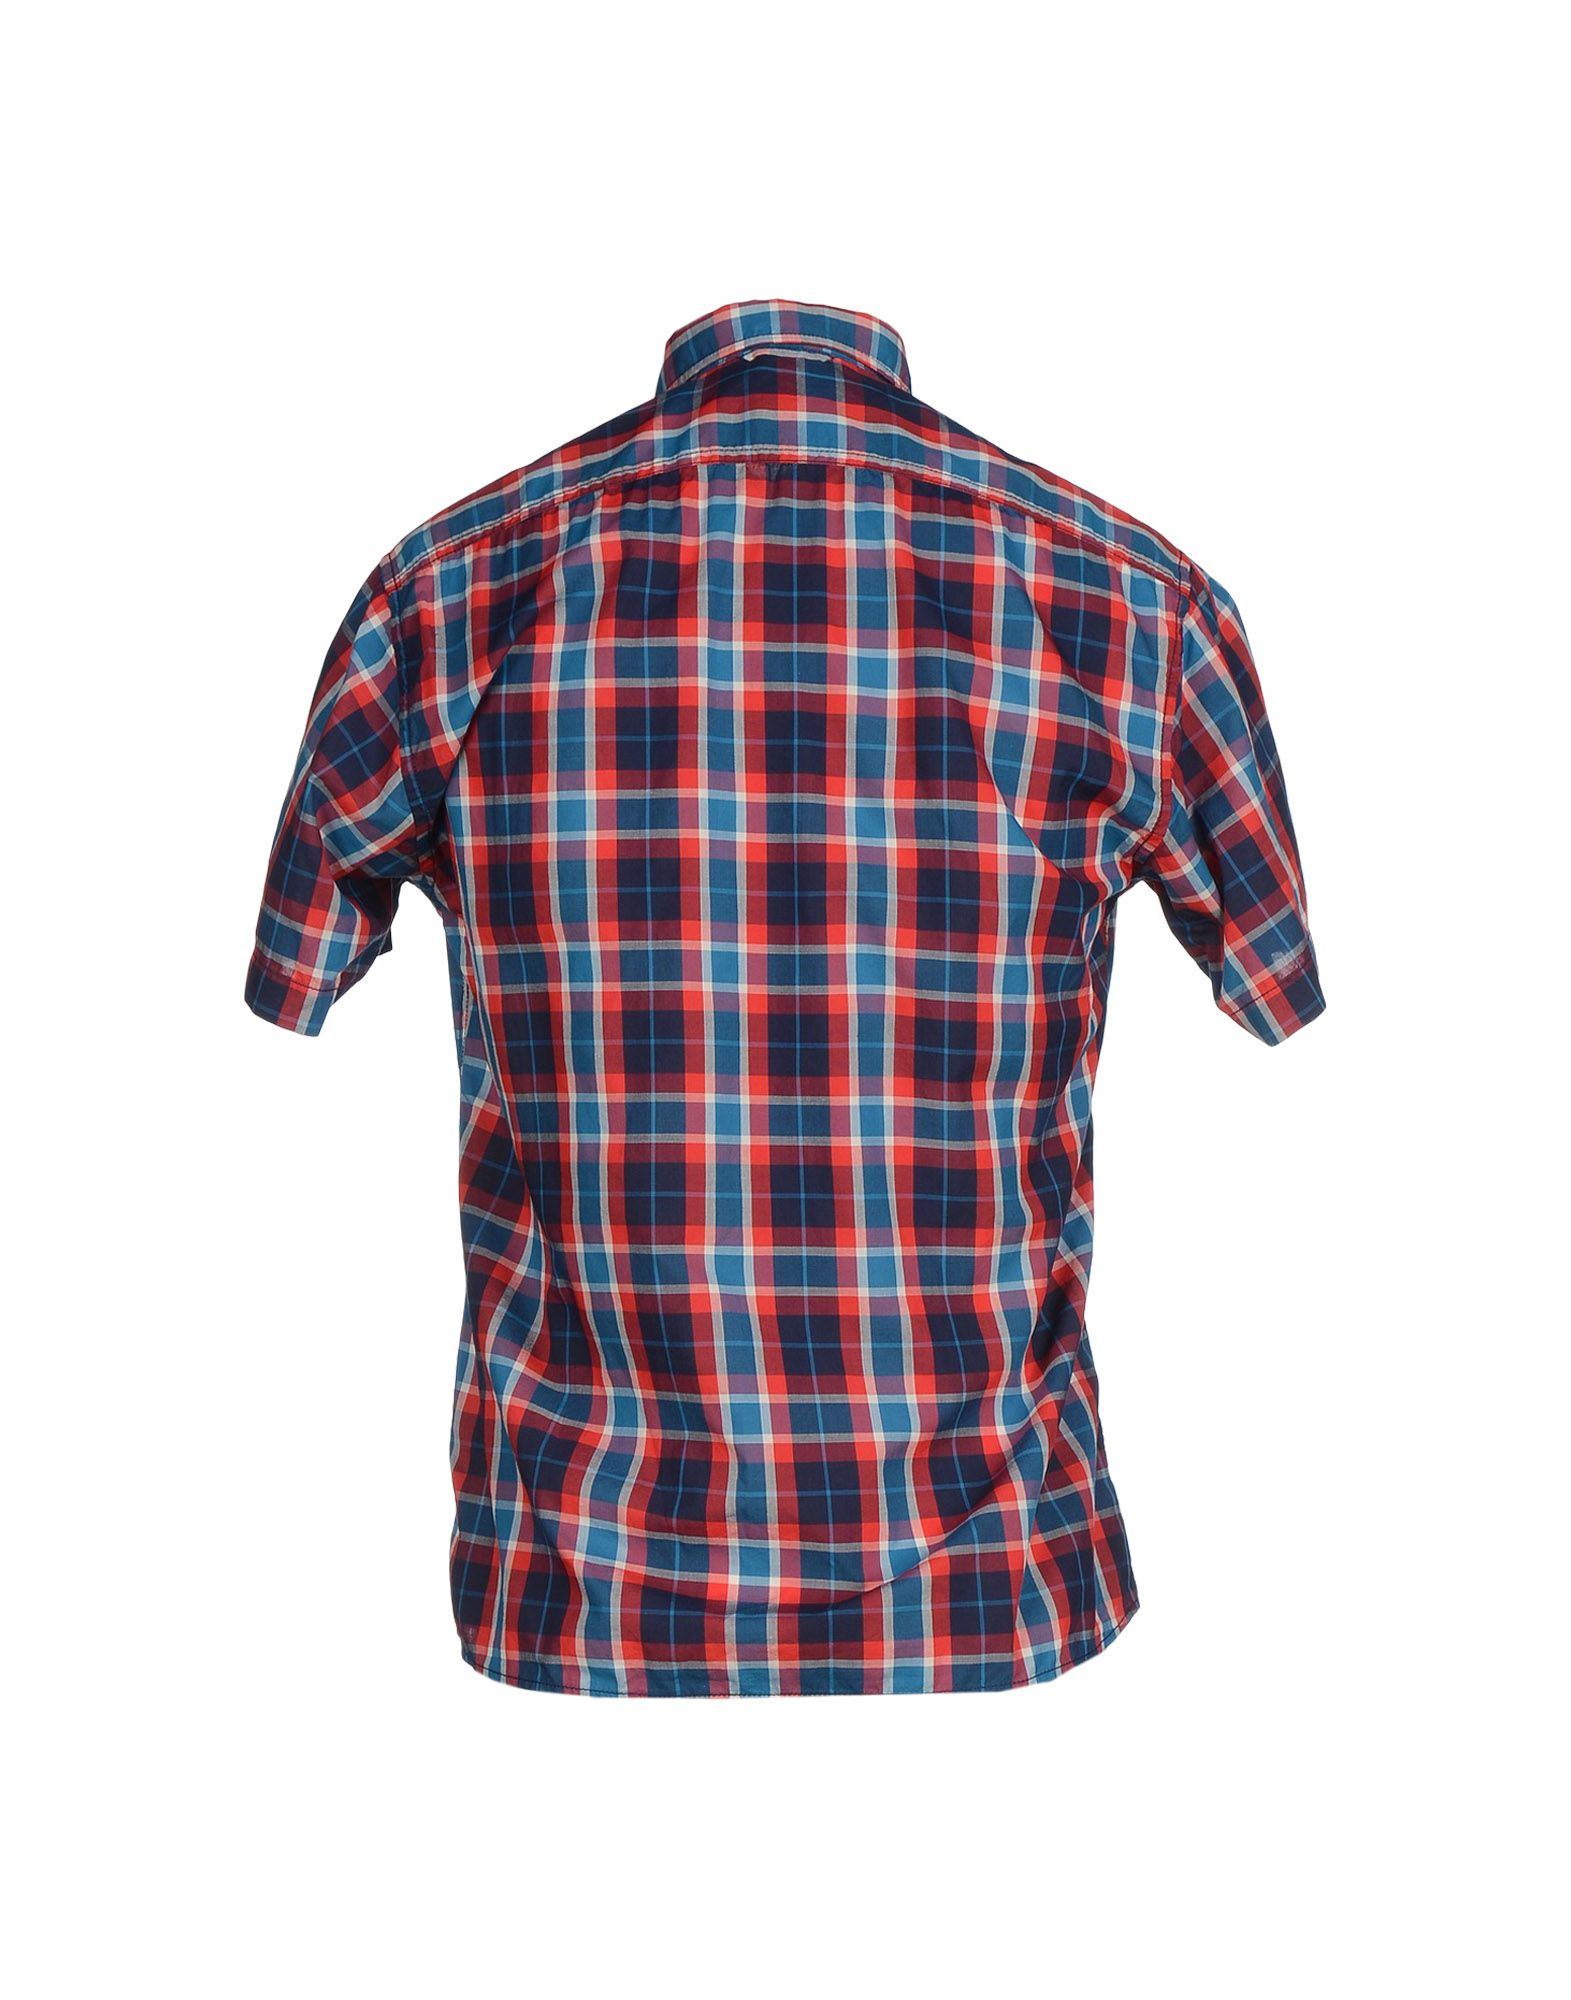 Franklin Marshall Shirt In Red For Men Brick Red Lyst